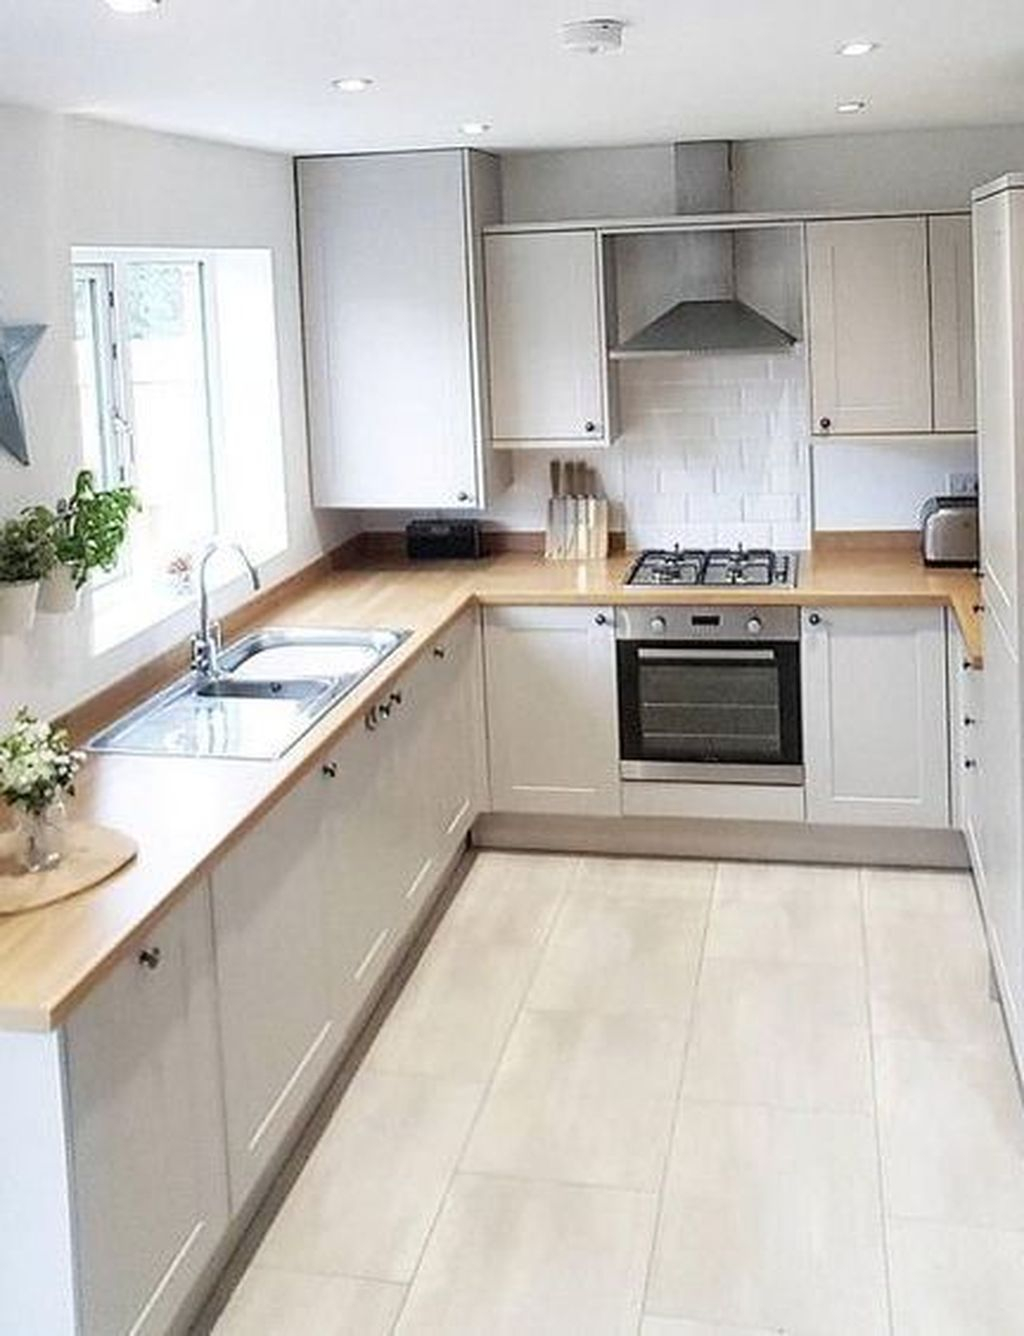 Best Tiny Kitchen Design Ideas For Your Small Space Inspiration 18